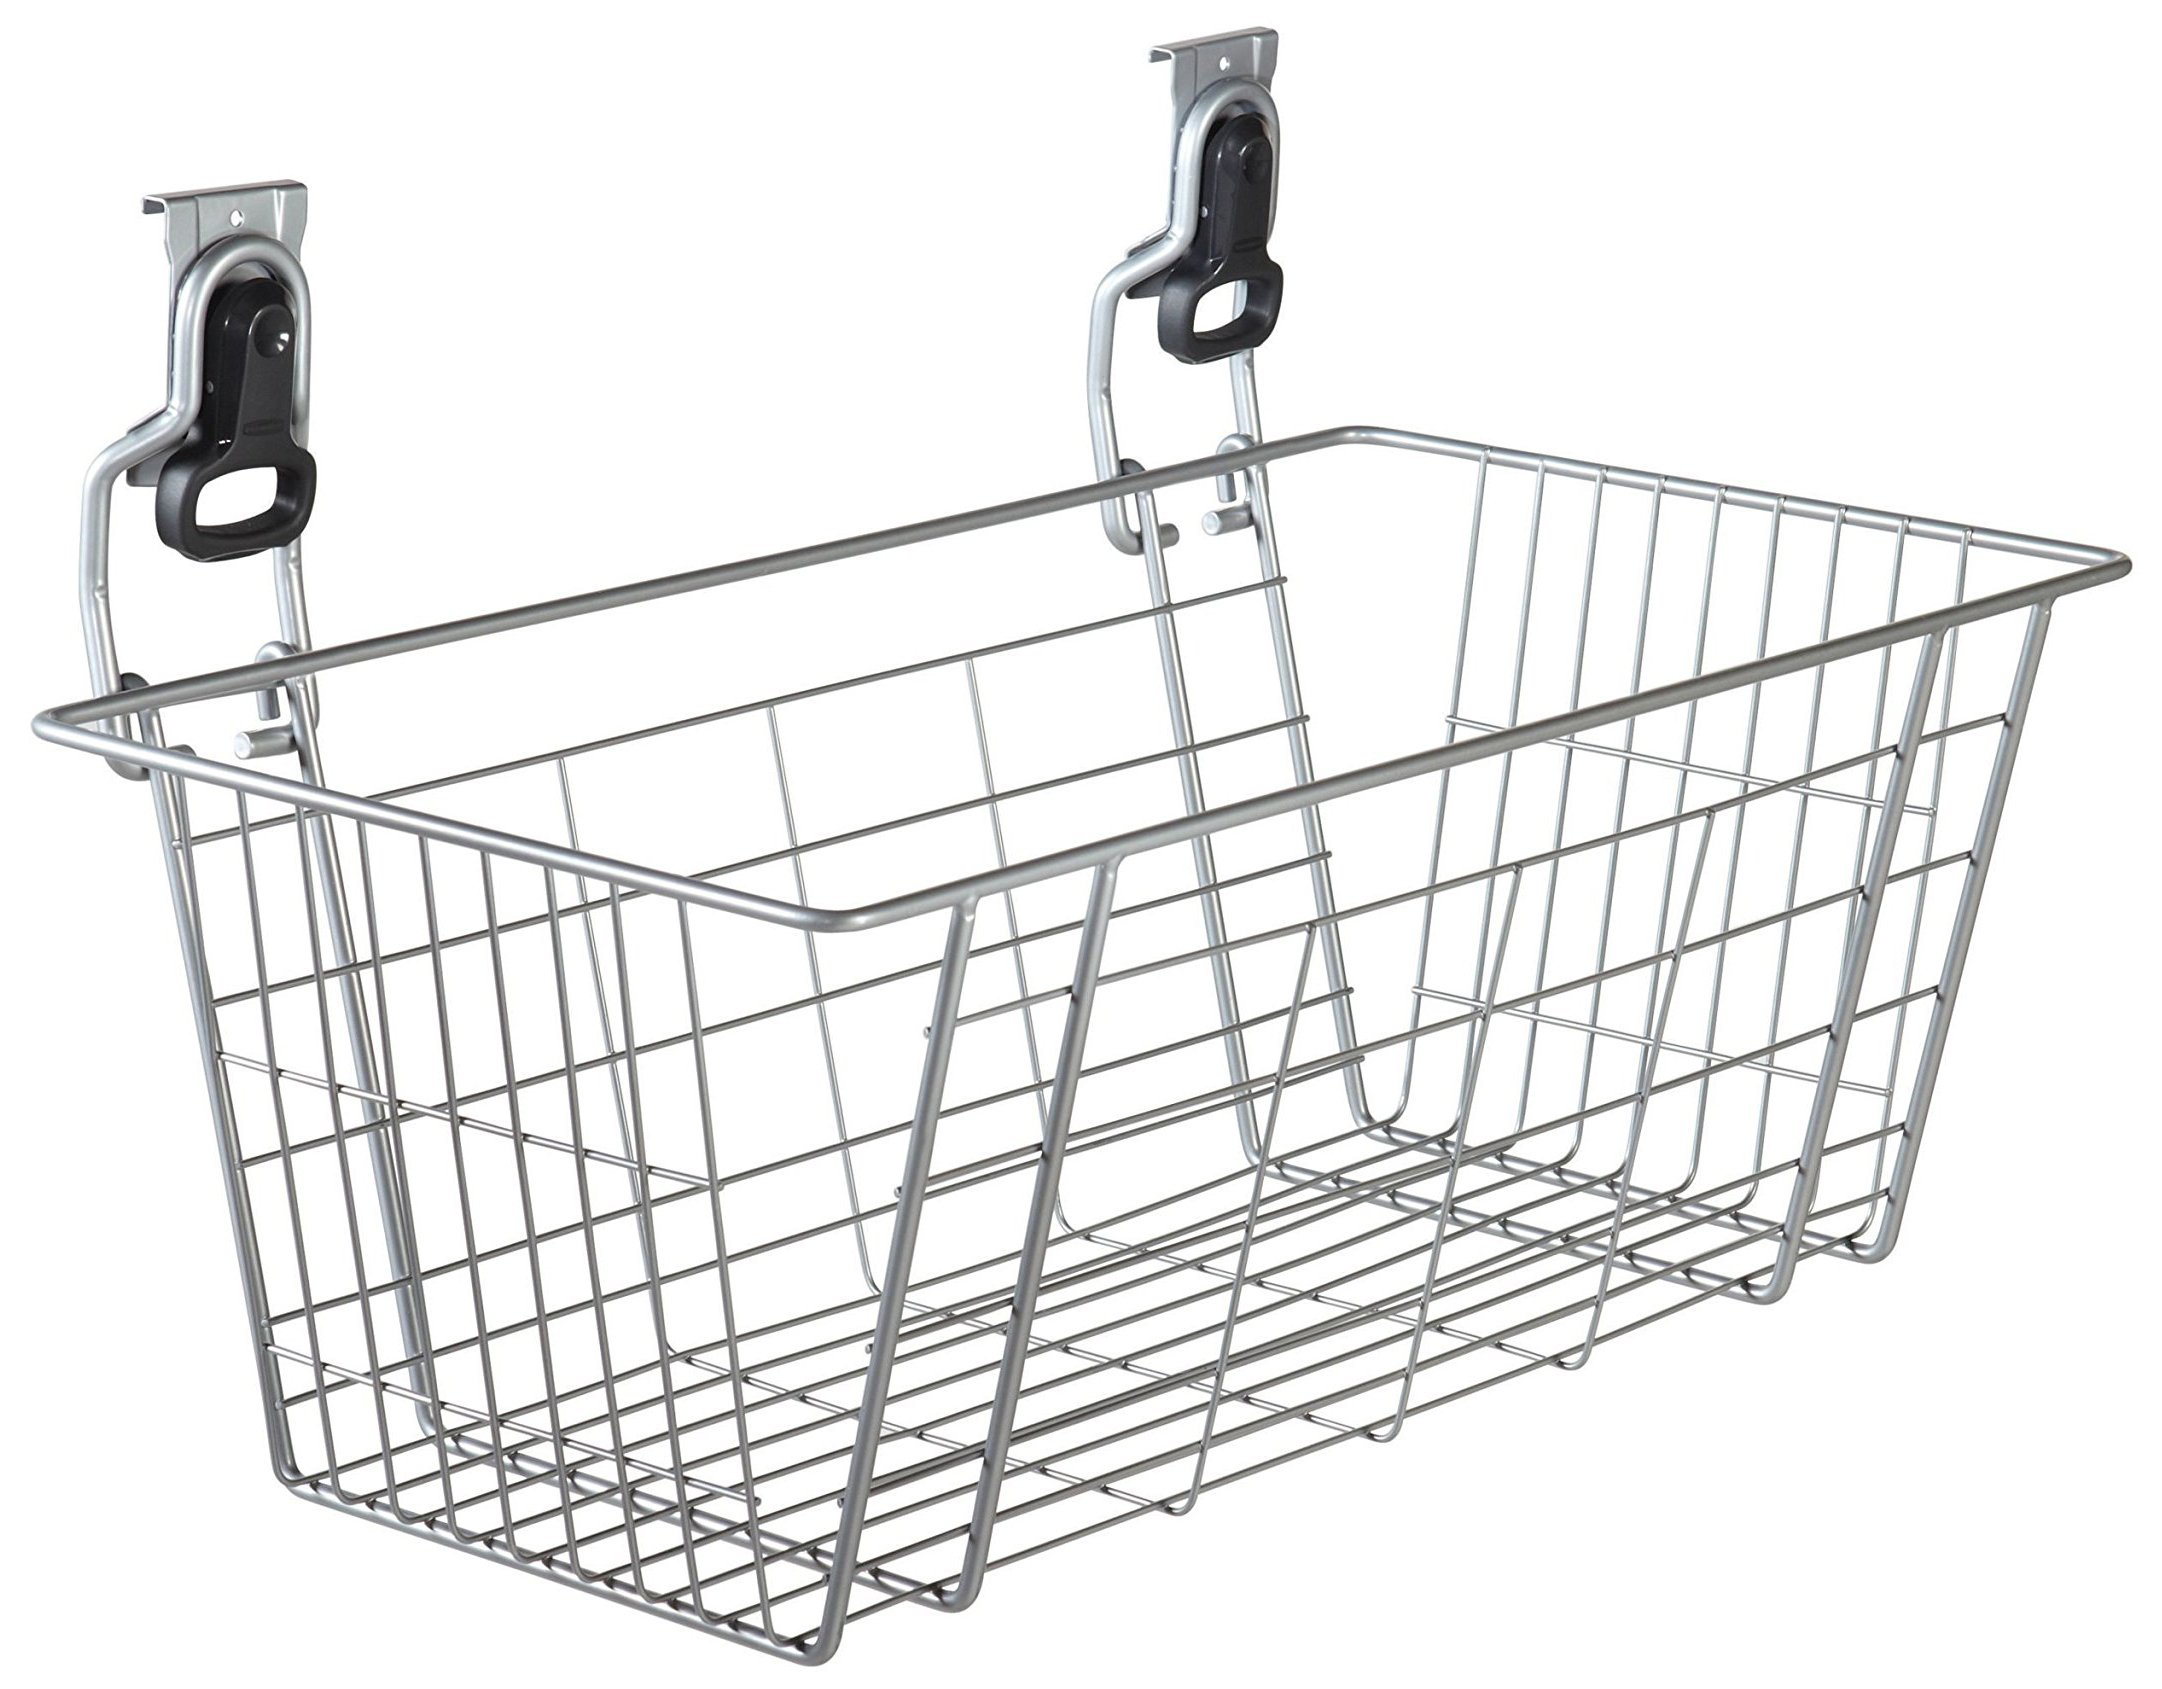 Rubbermaid FastTrack Garage Storage Wire Mesh Basket by Rubbermaid